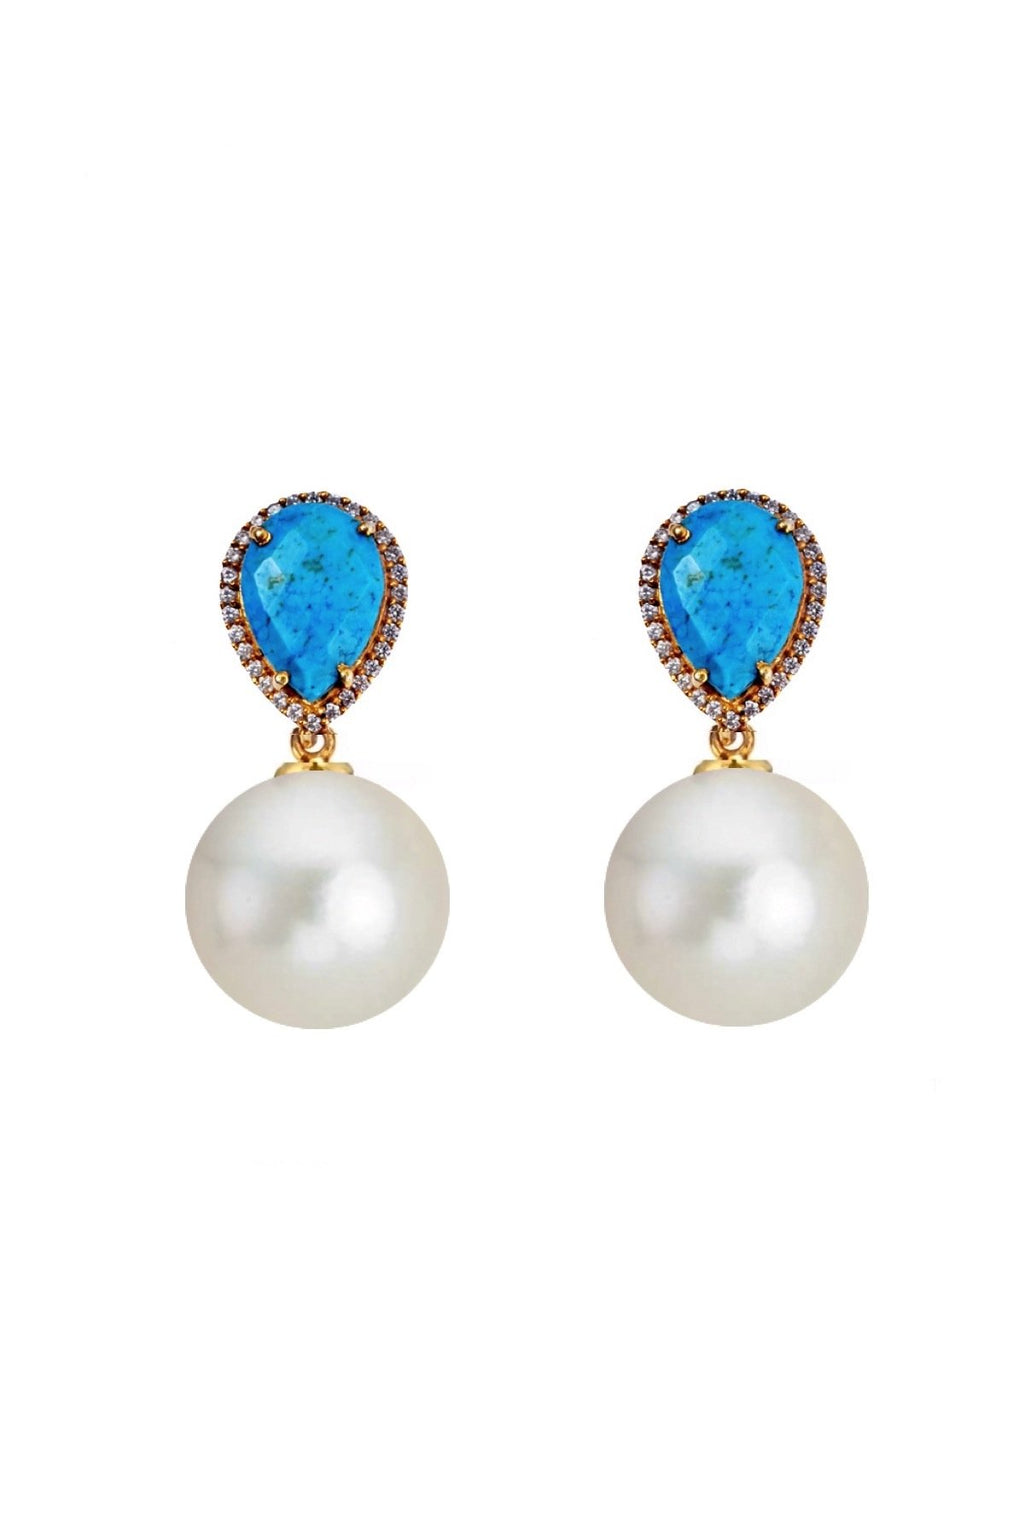 18K Gold Turquoise Embelished Pearl Drop Earrings